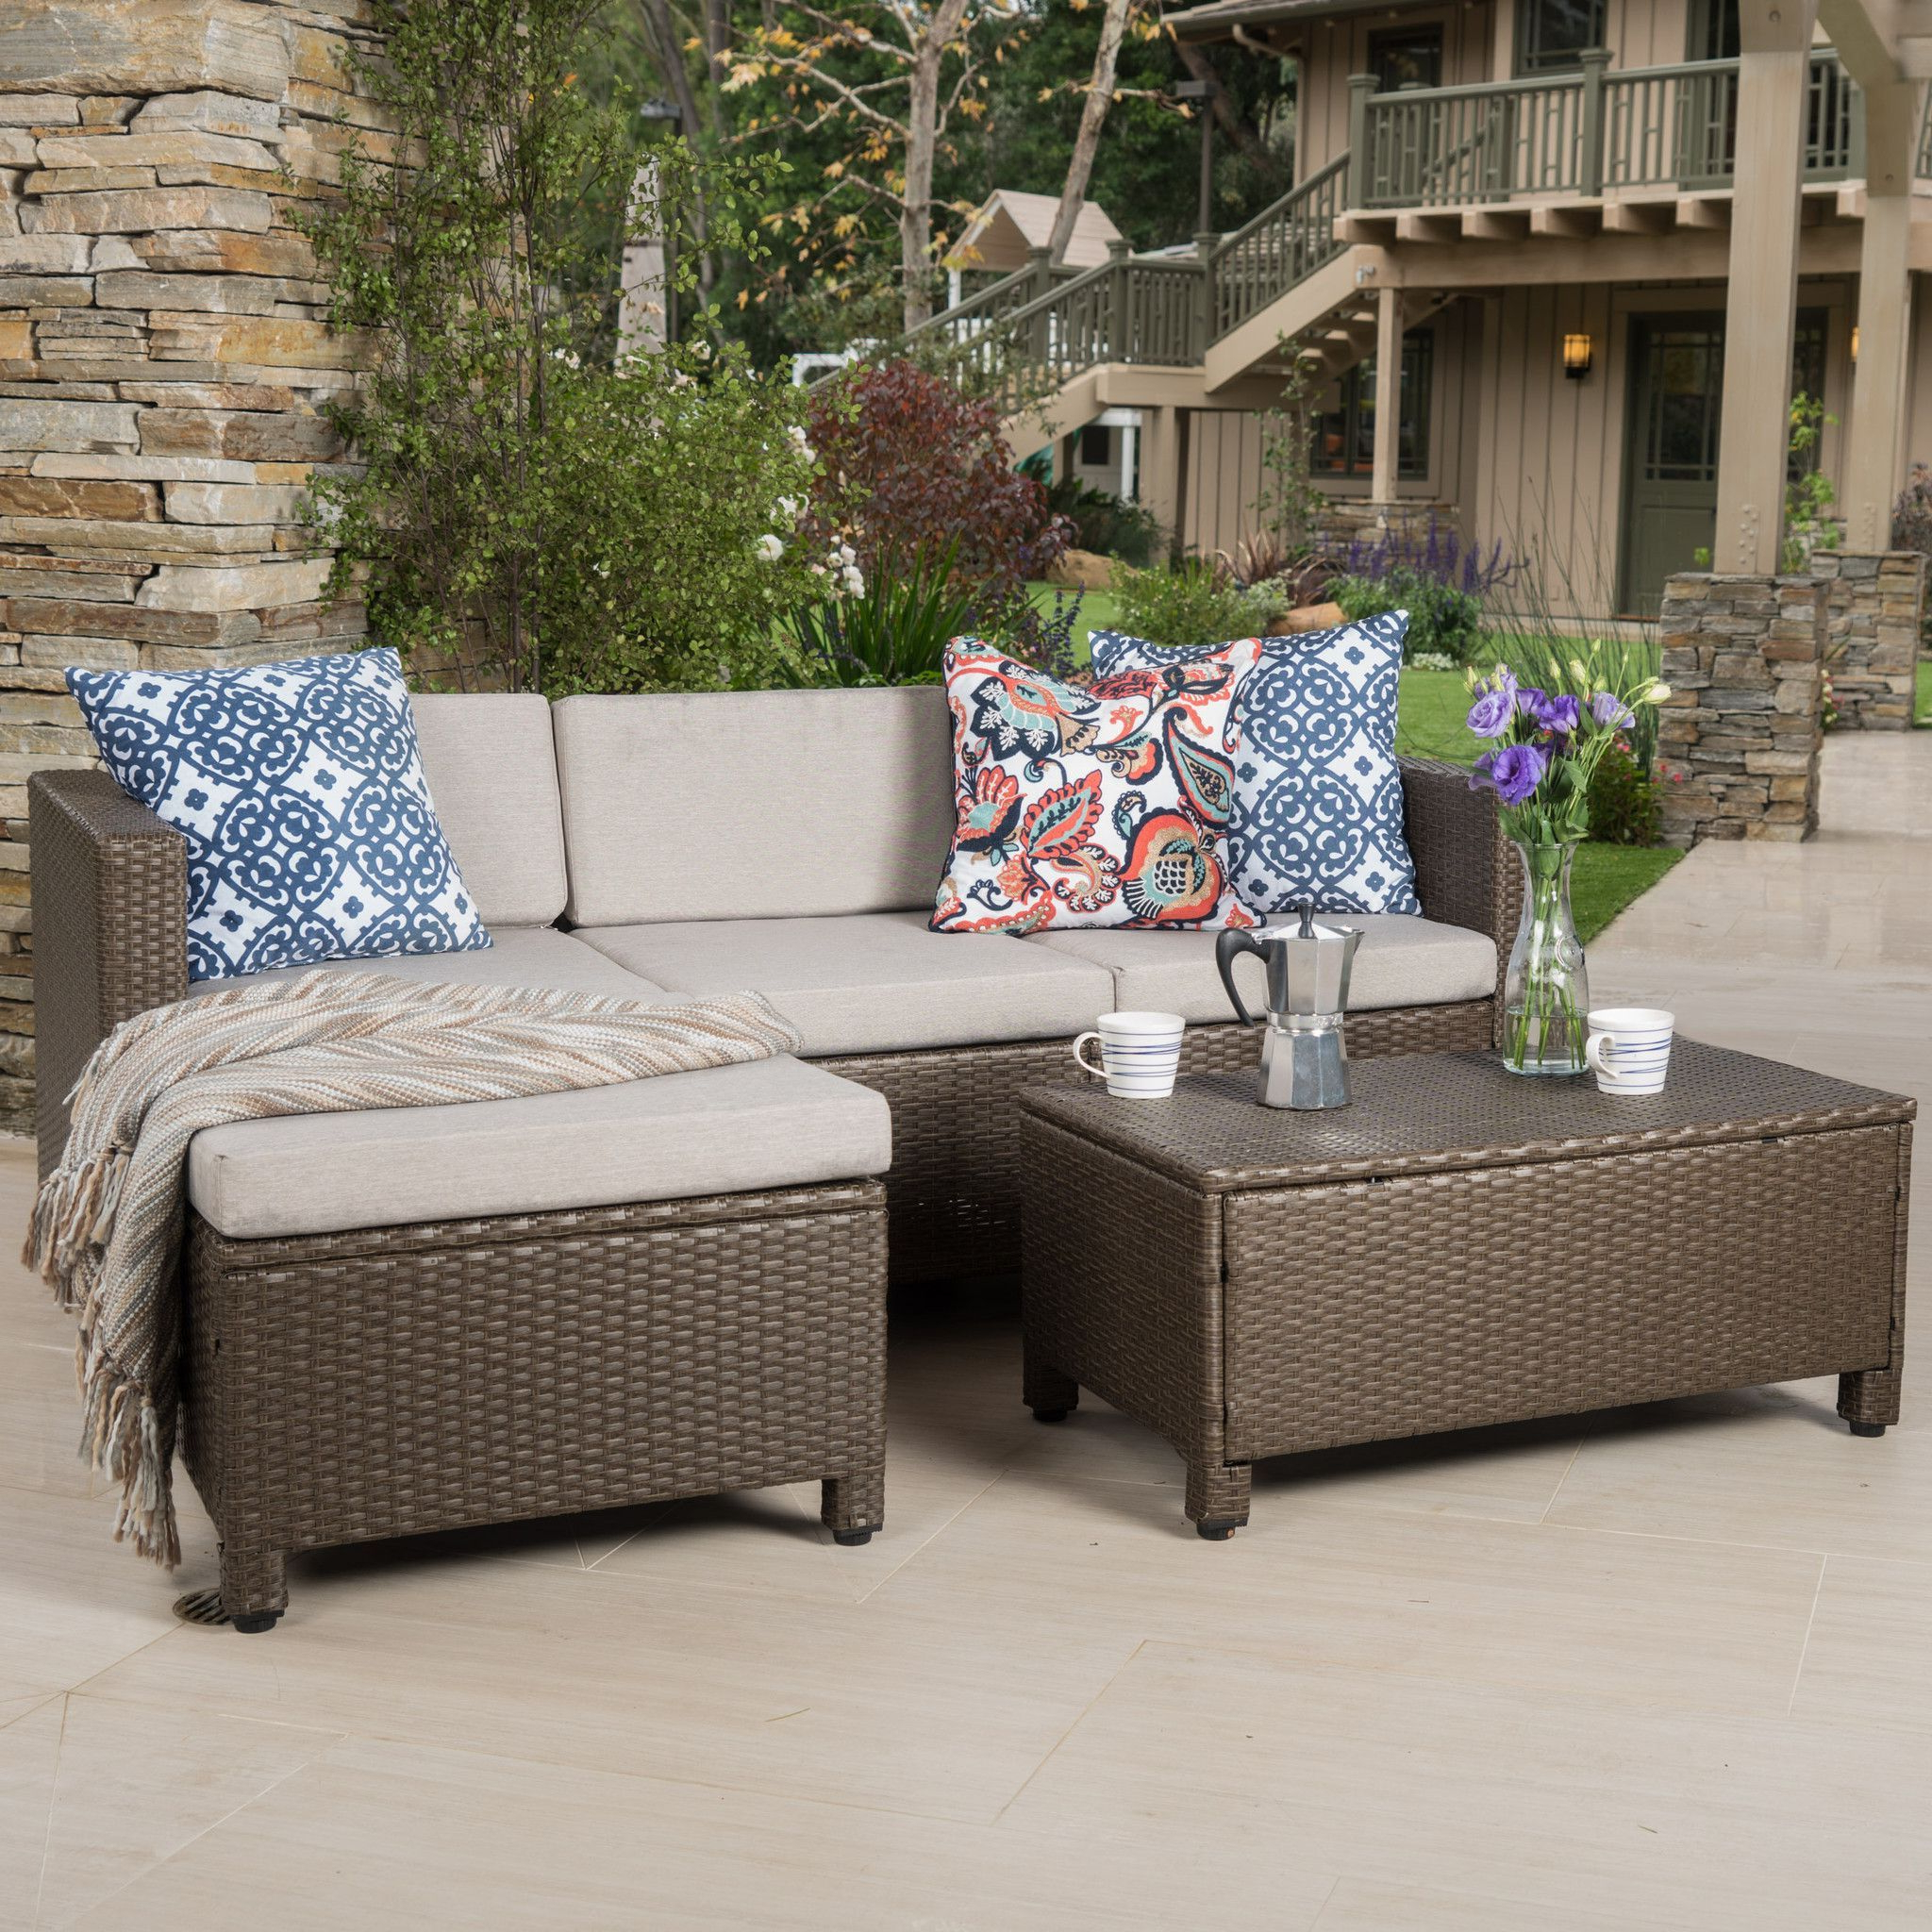 Larsen Patio Sectionals With Cushions In Well Known Budva Outdoor L Shape Brown Wicker Sofa W/ Cushions In  (View 10 of 20)